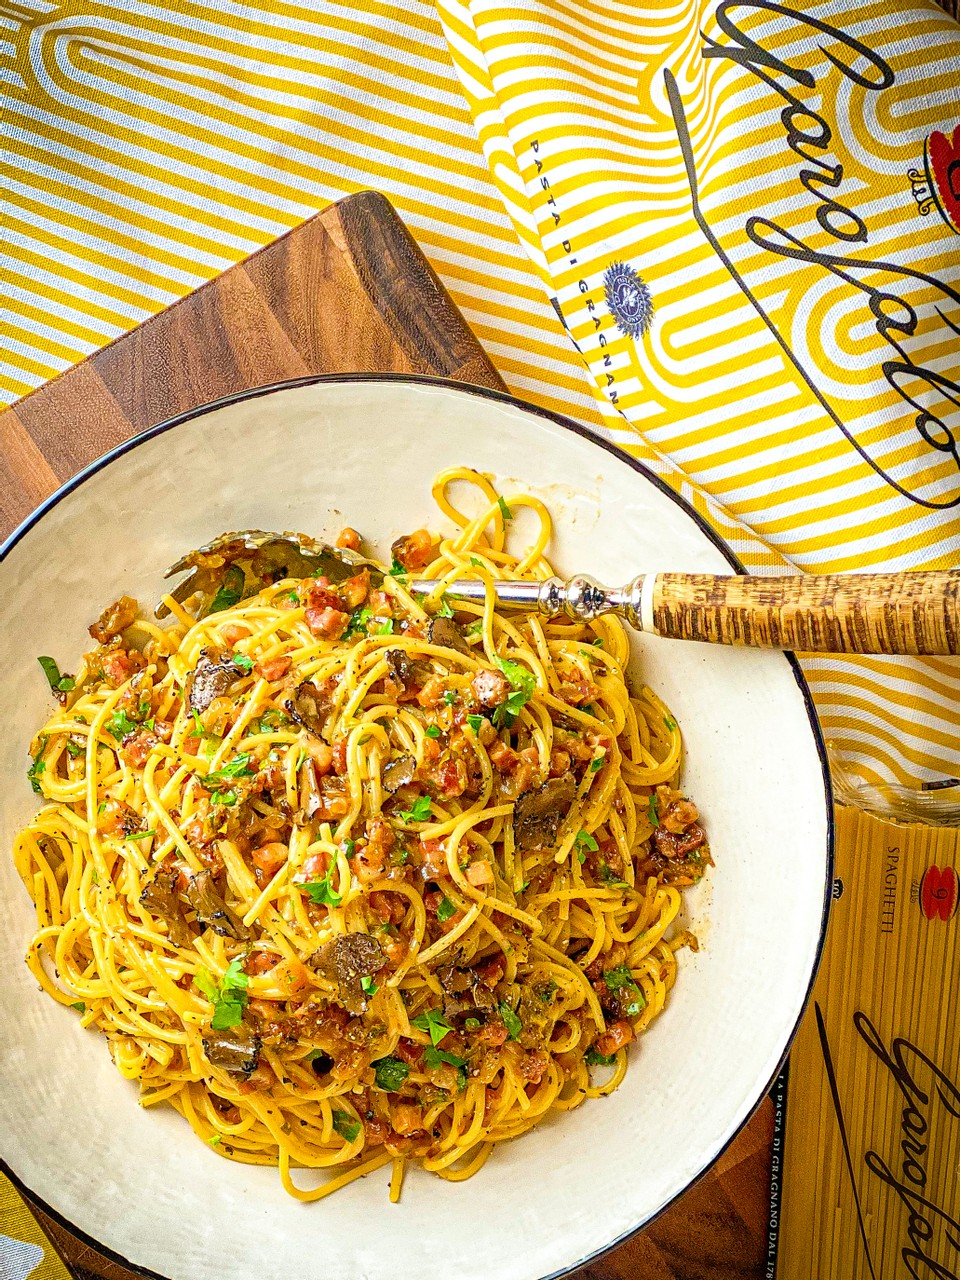 Pimped Up Carbonara With Truffle